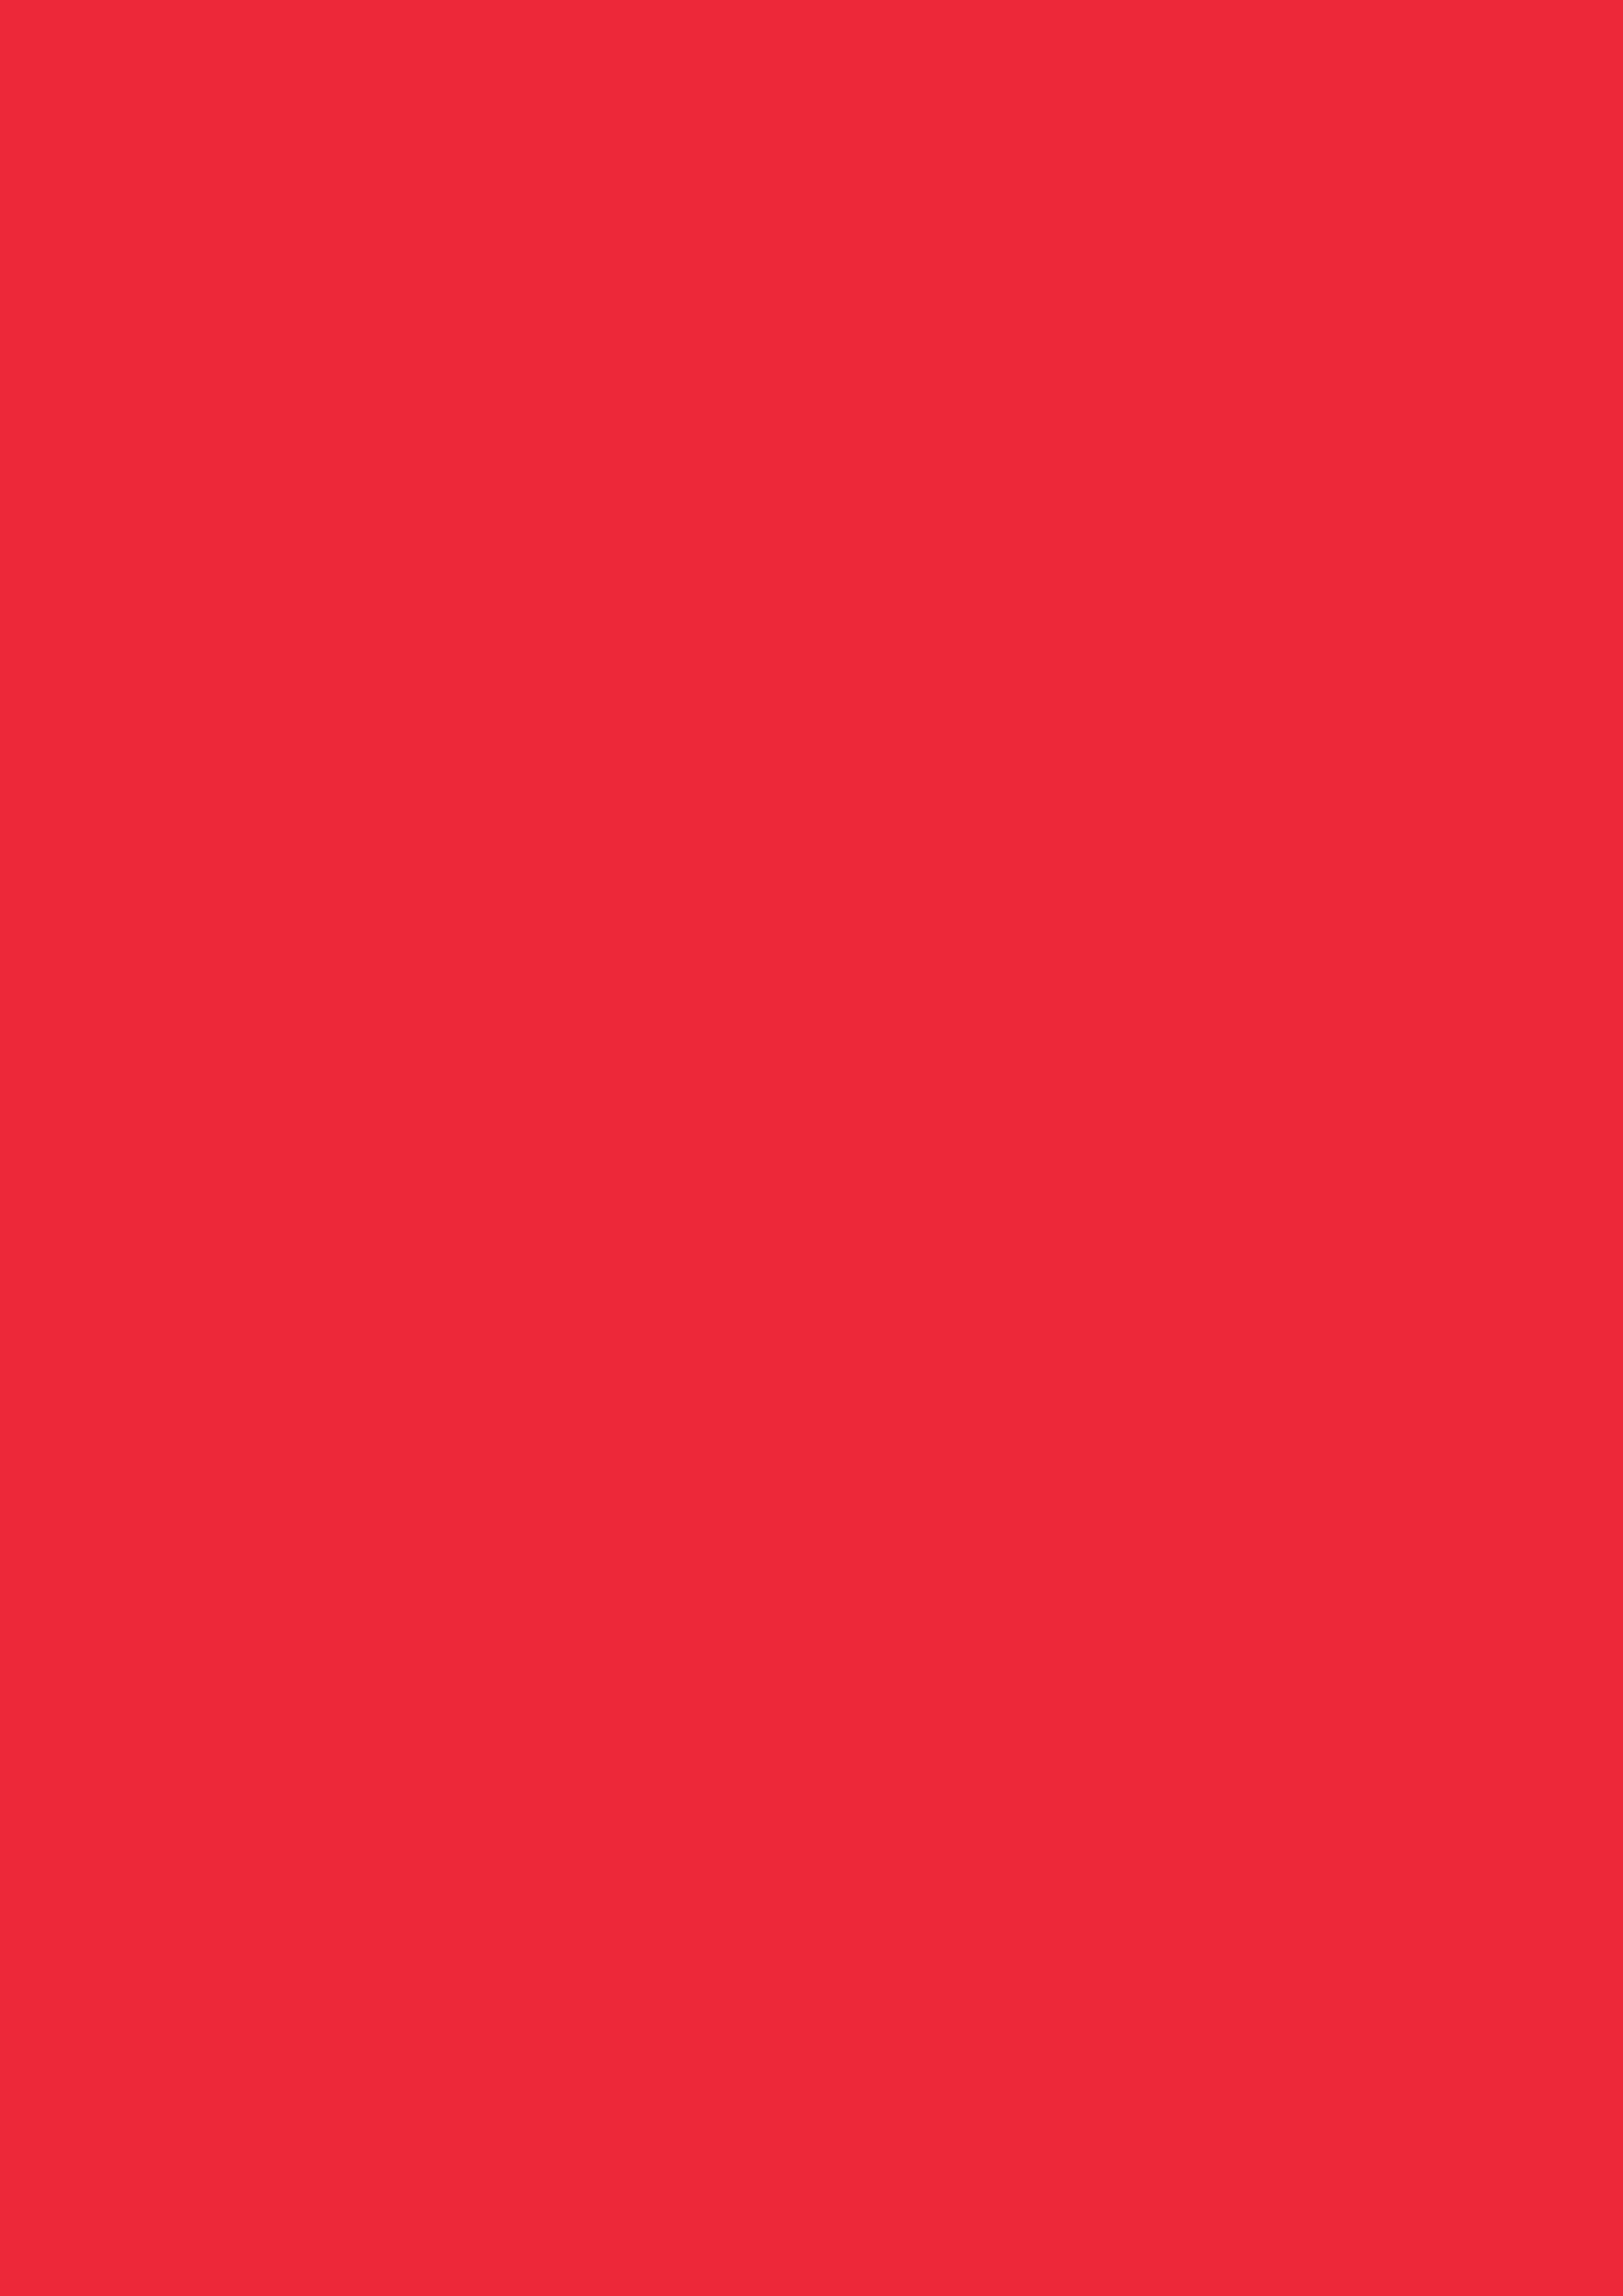 2480x3508 Red Pantone Solid Color Background